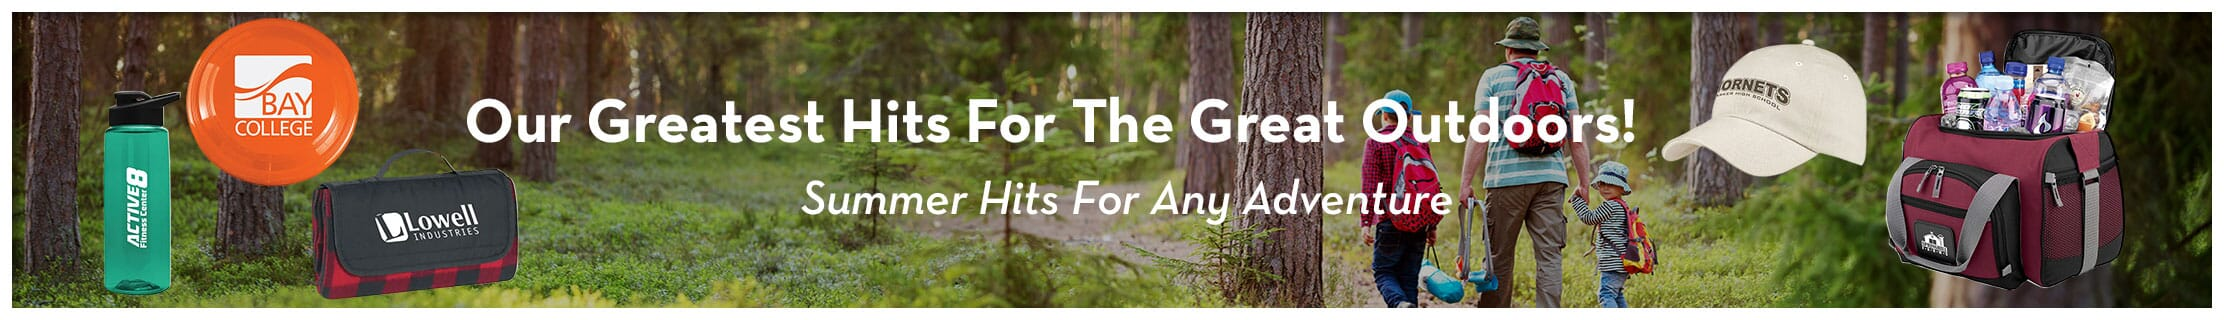 Our greatest hits for the outdoors